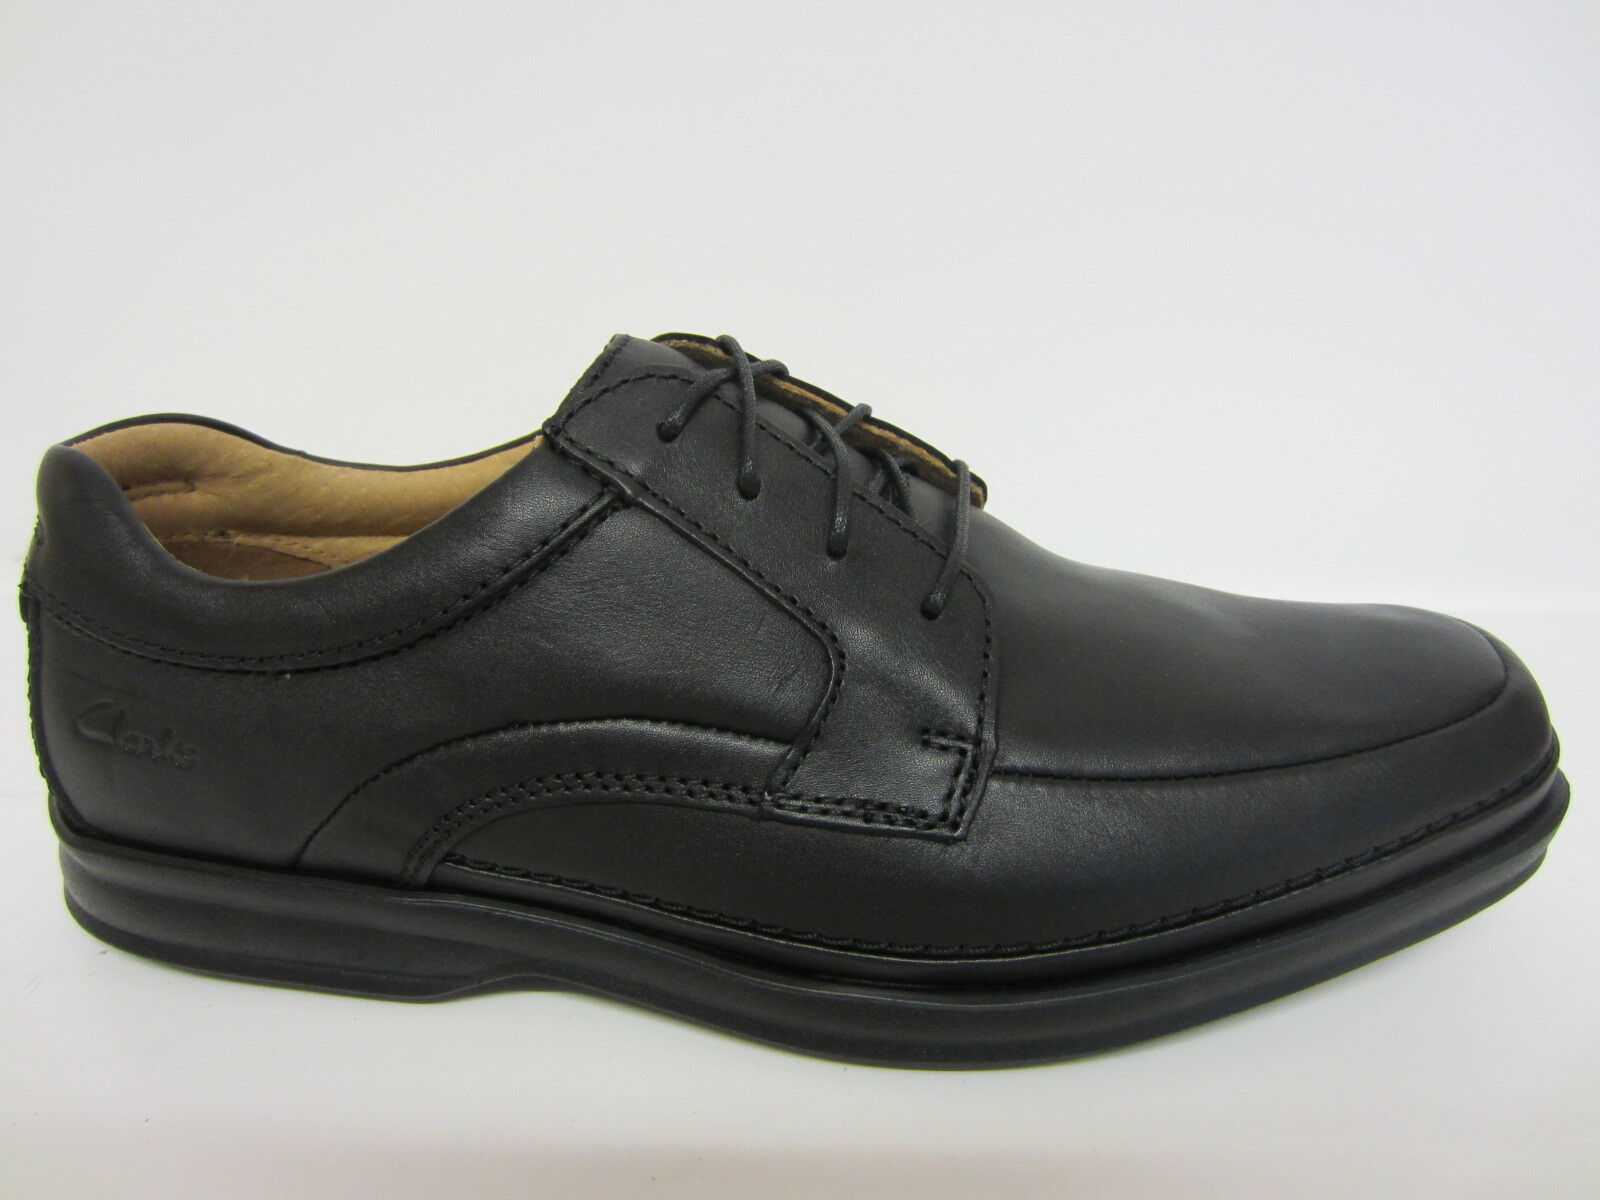 Clarks Mens Black Leather Active Air Lace-up Shoe Scopic Way H Fitt   (R21B)